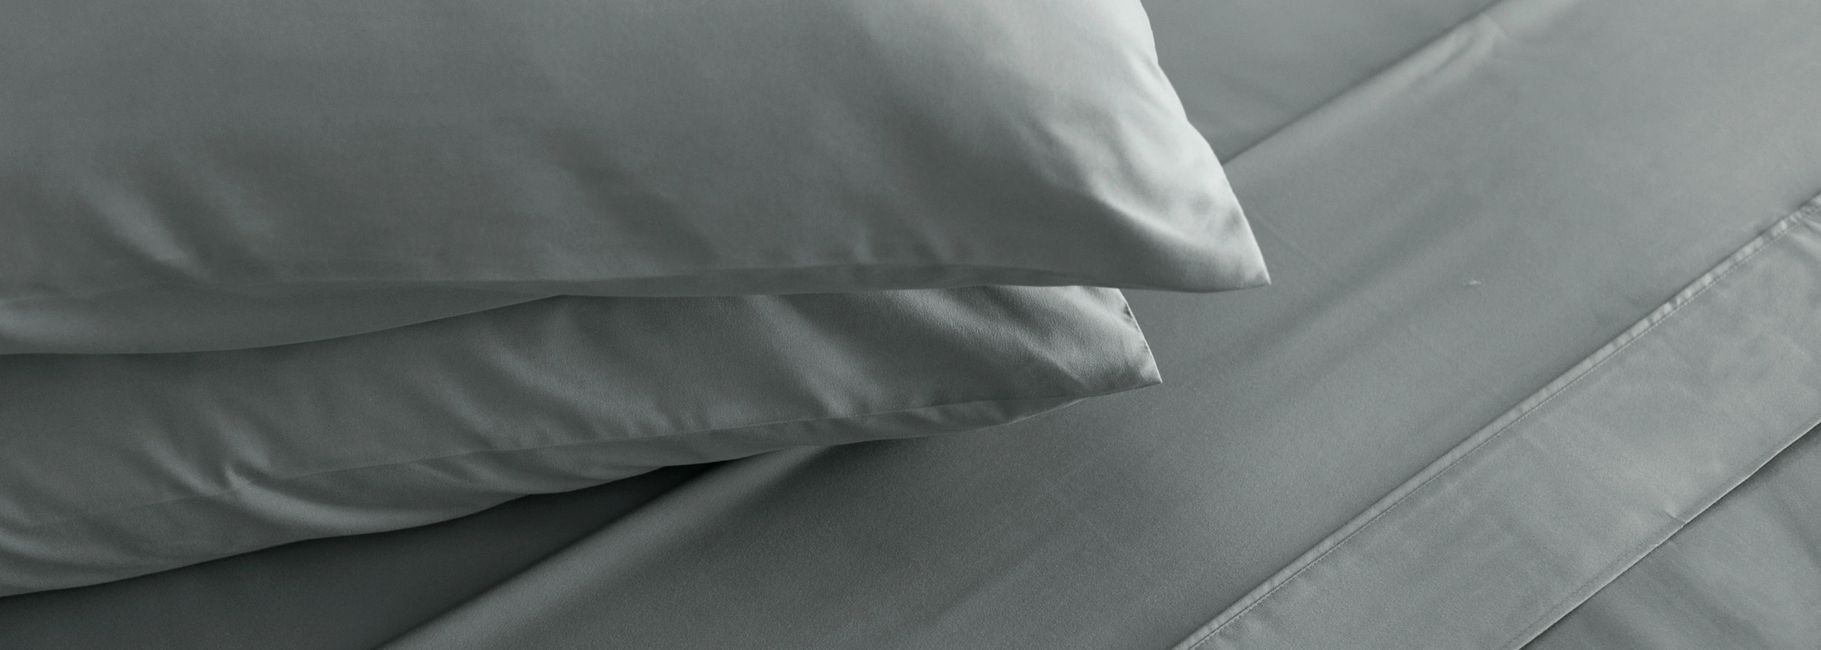 Comphy  specialty comforter holiday gifts luxury cloud soft sheets wrinkle-free stain resistant